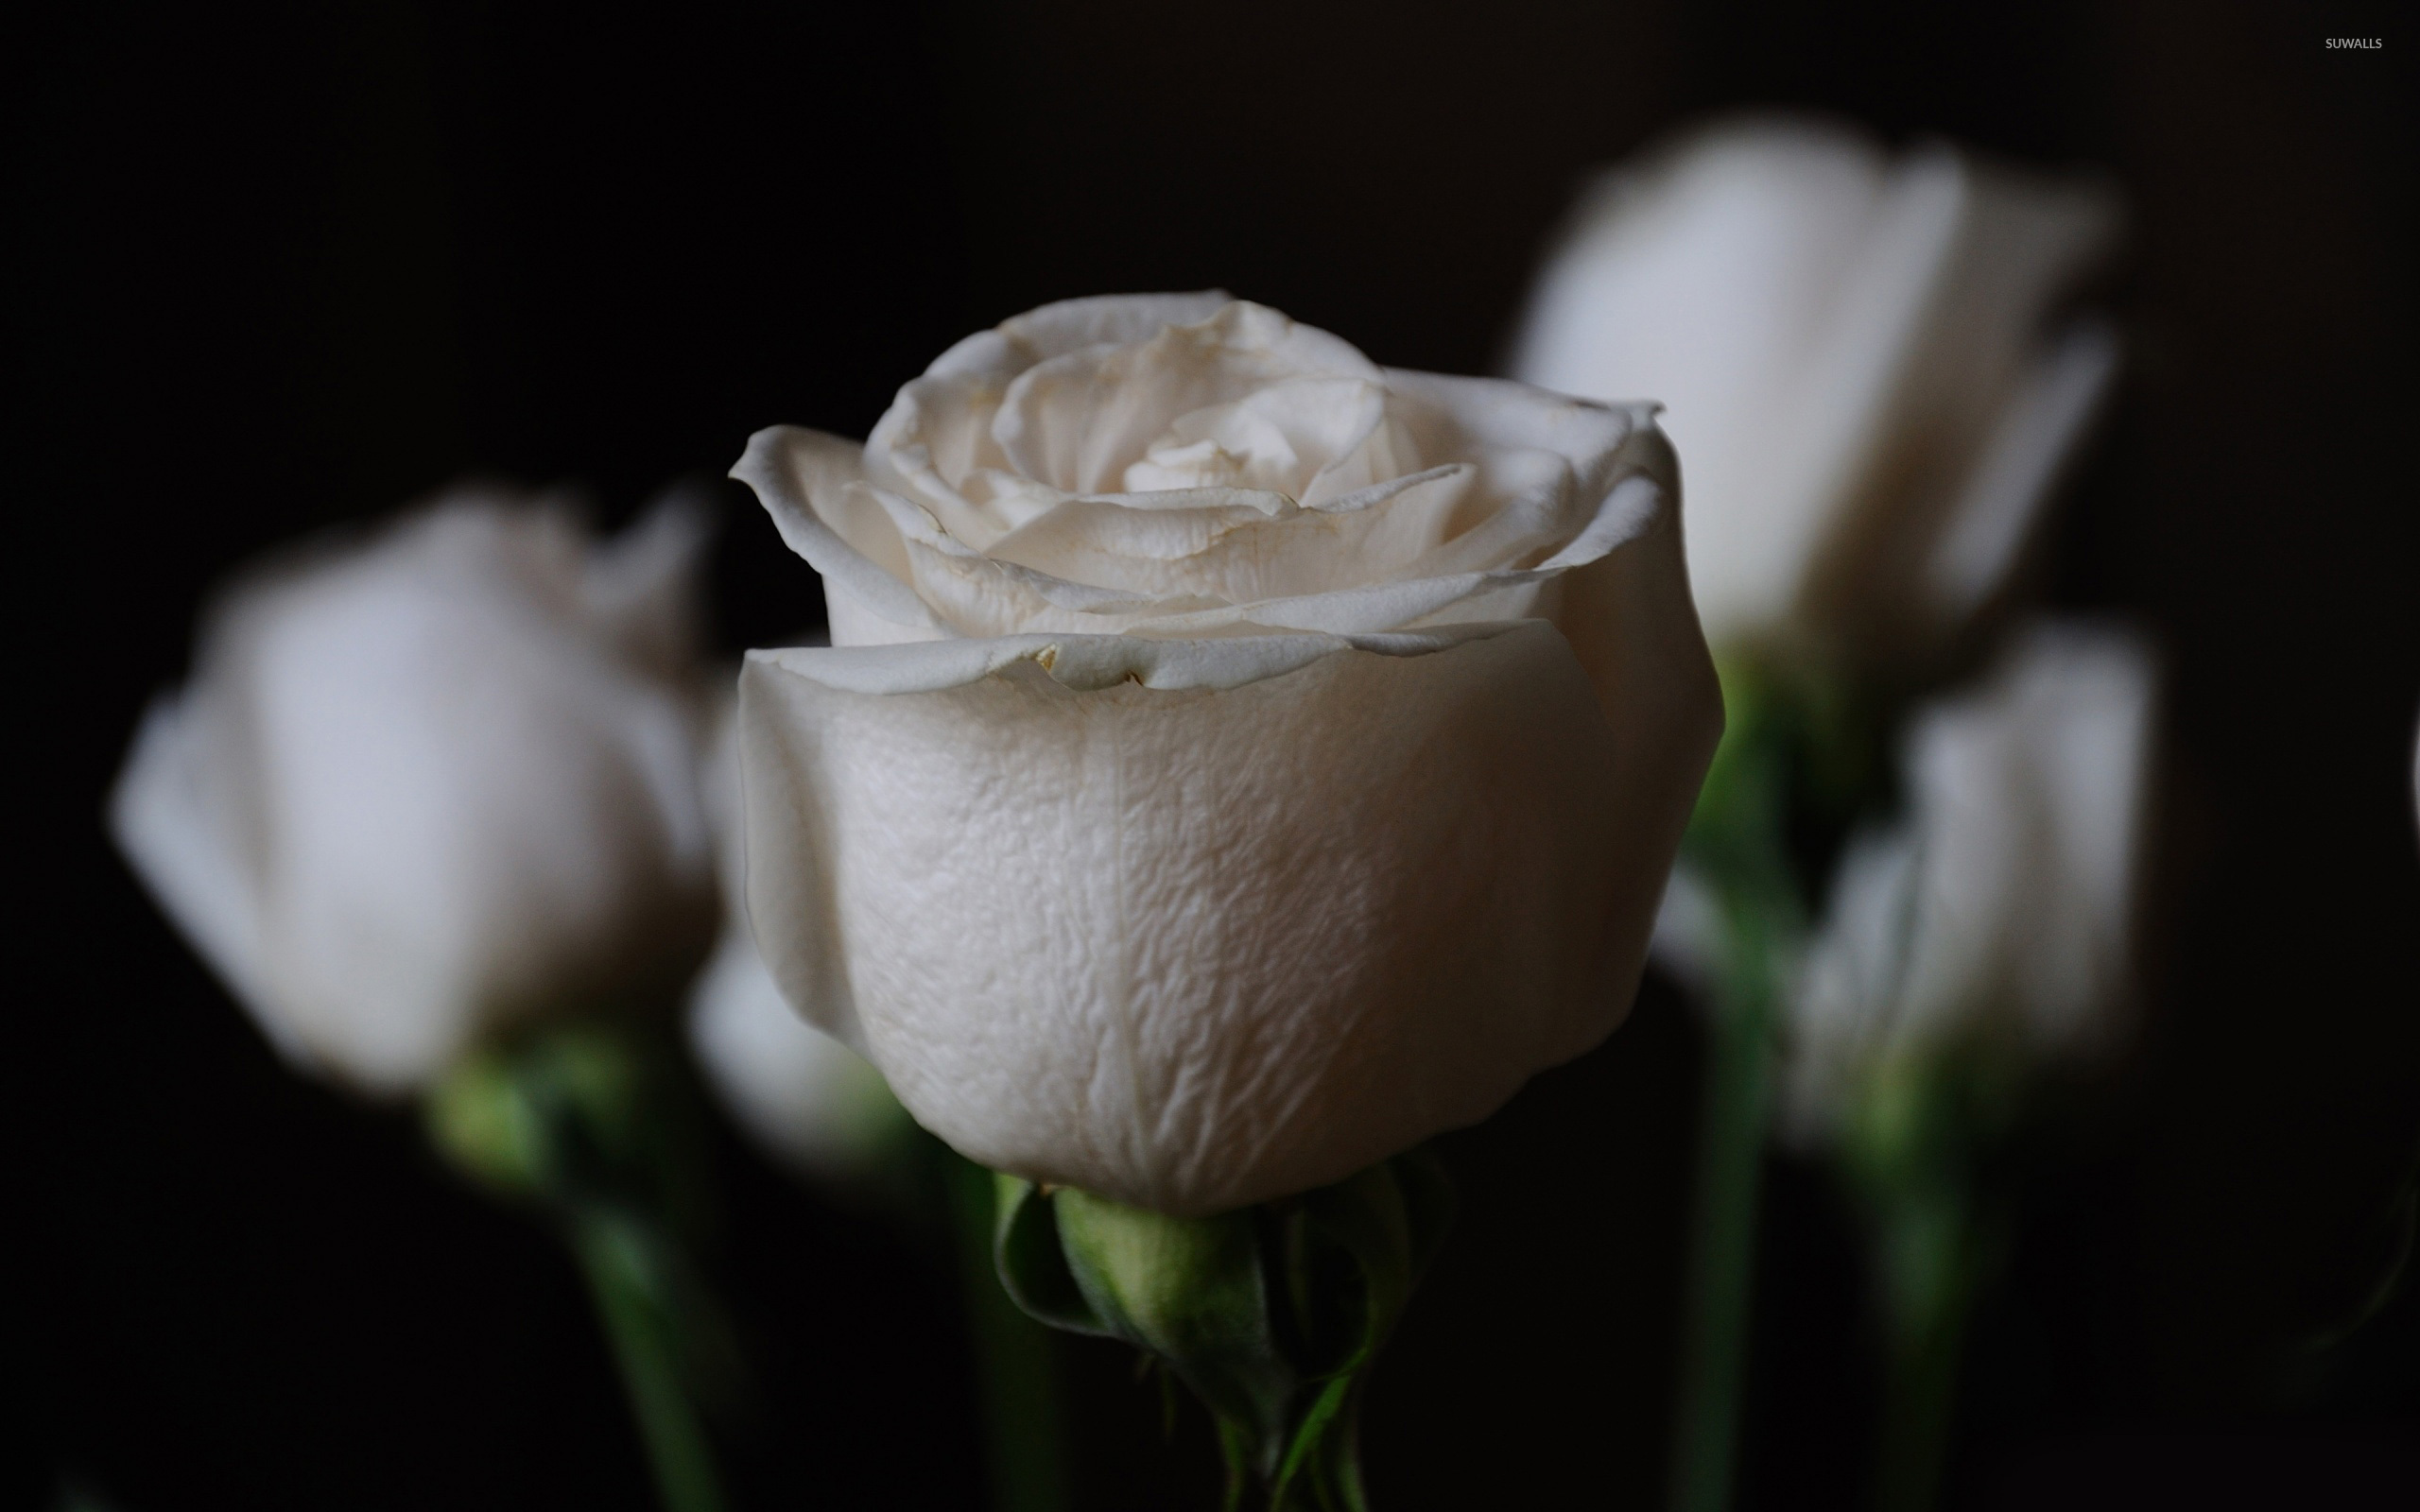 White roses wallpaper - Flower wallpapers - #8473